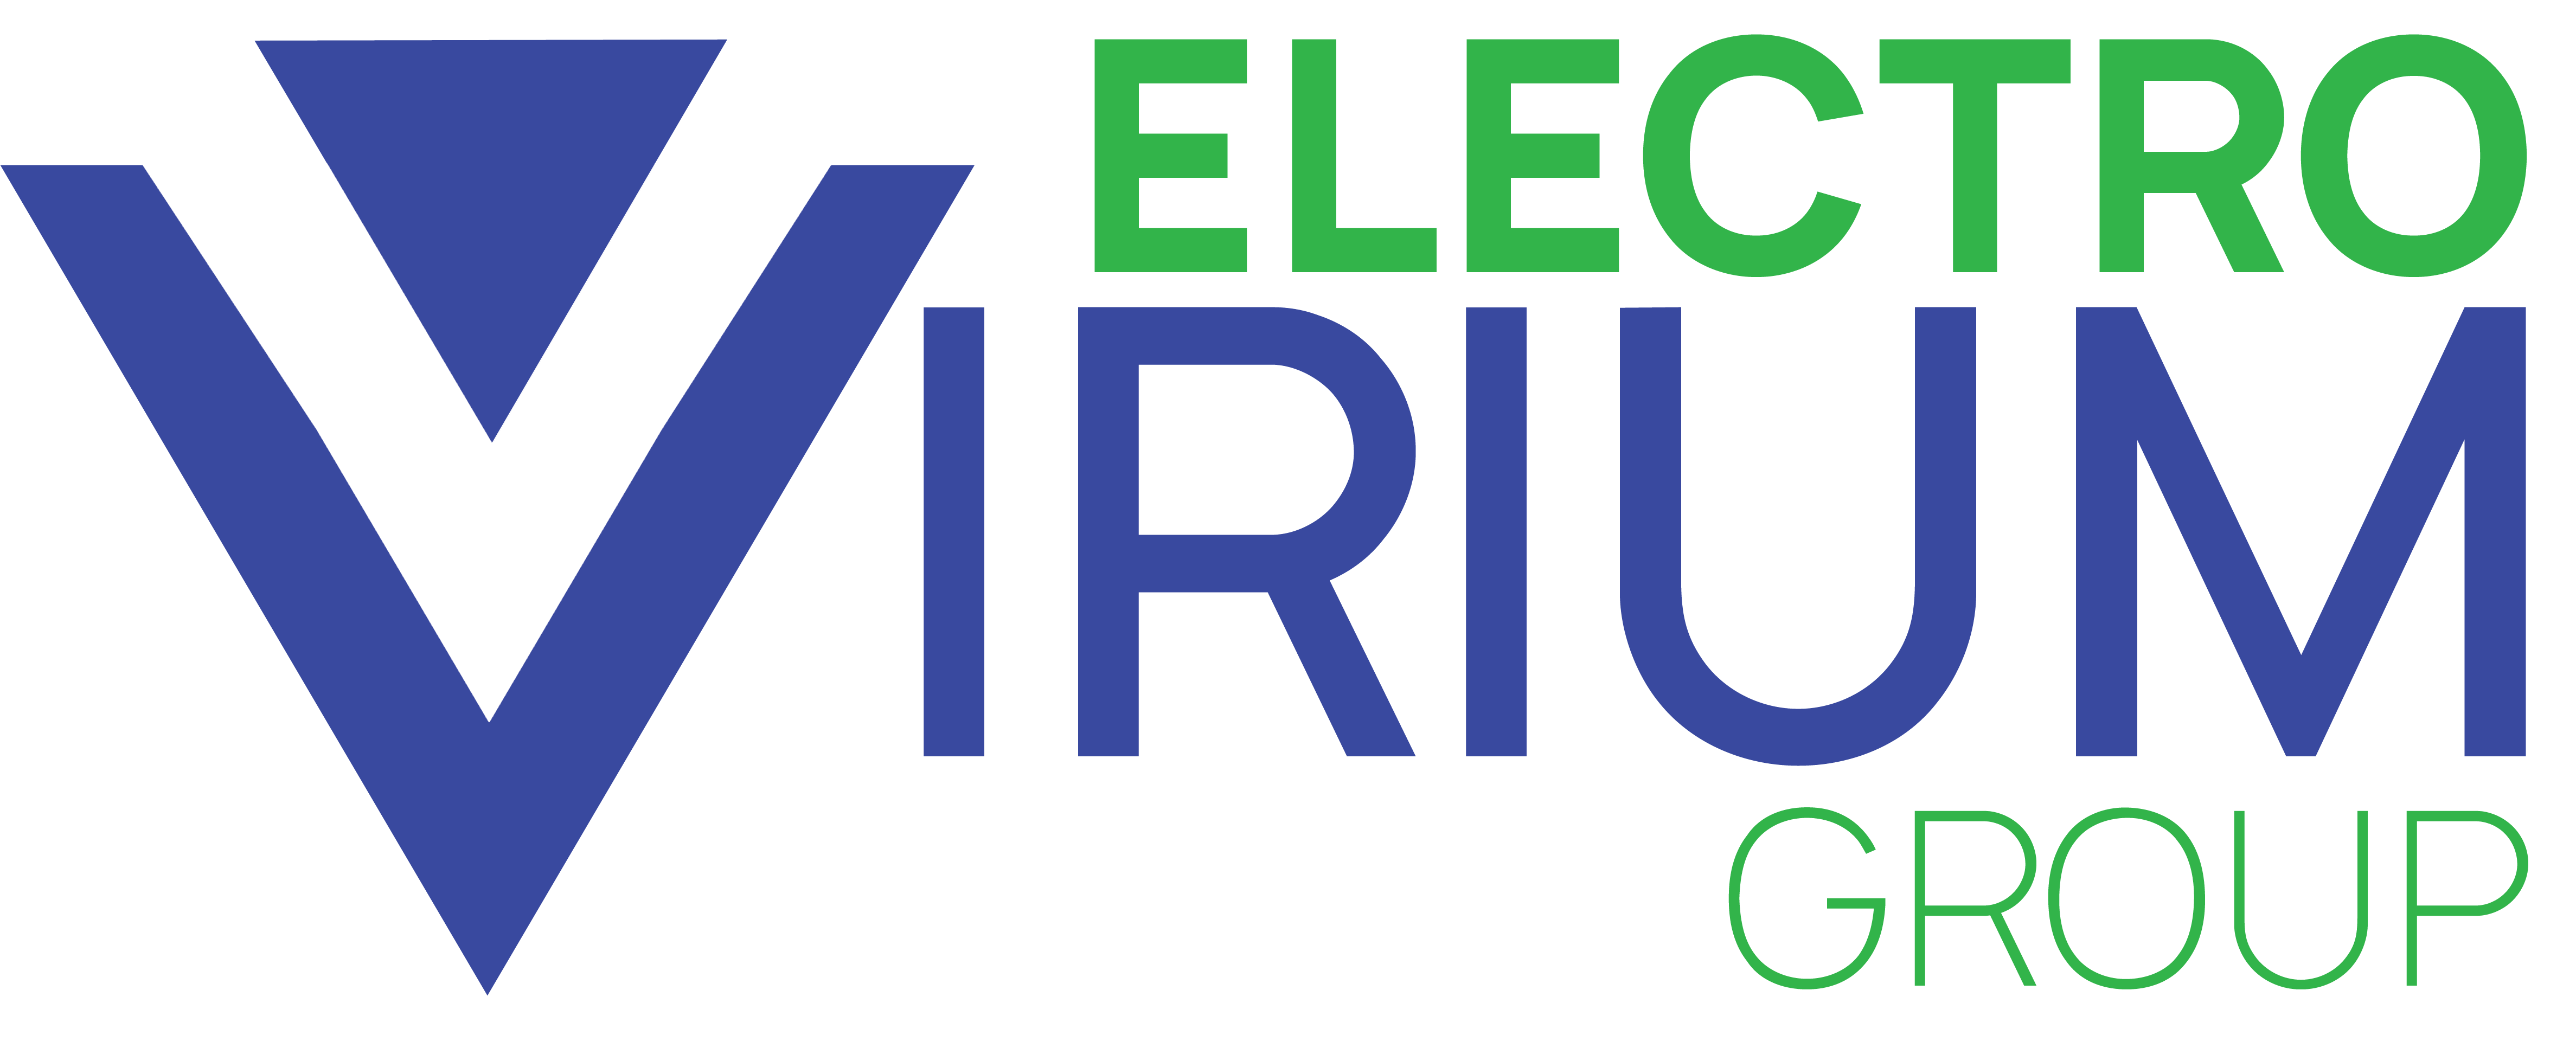 Electro Virium Group